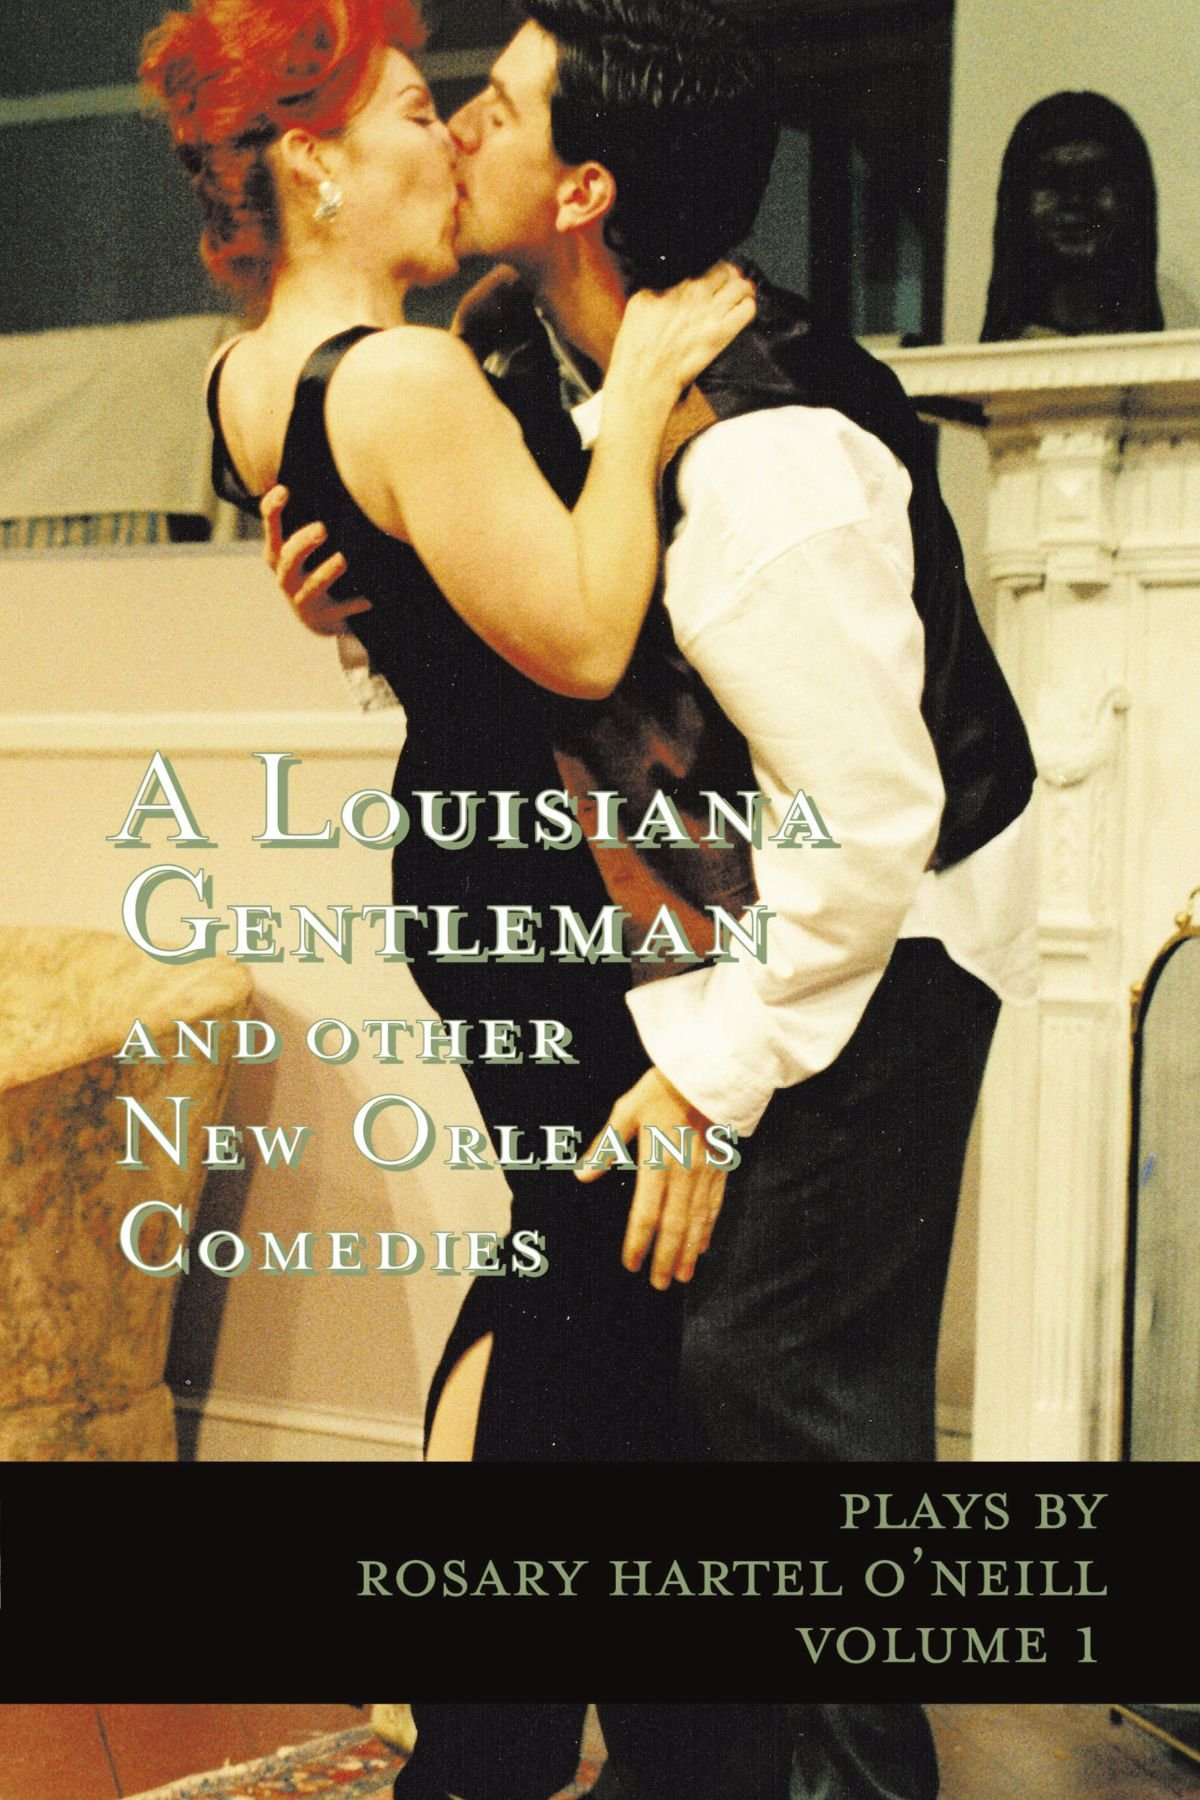 A Louisiana Gentleman and other New Orleans Comedies: Vol 1 pdf